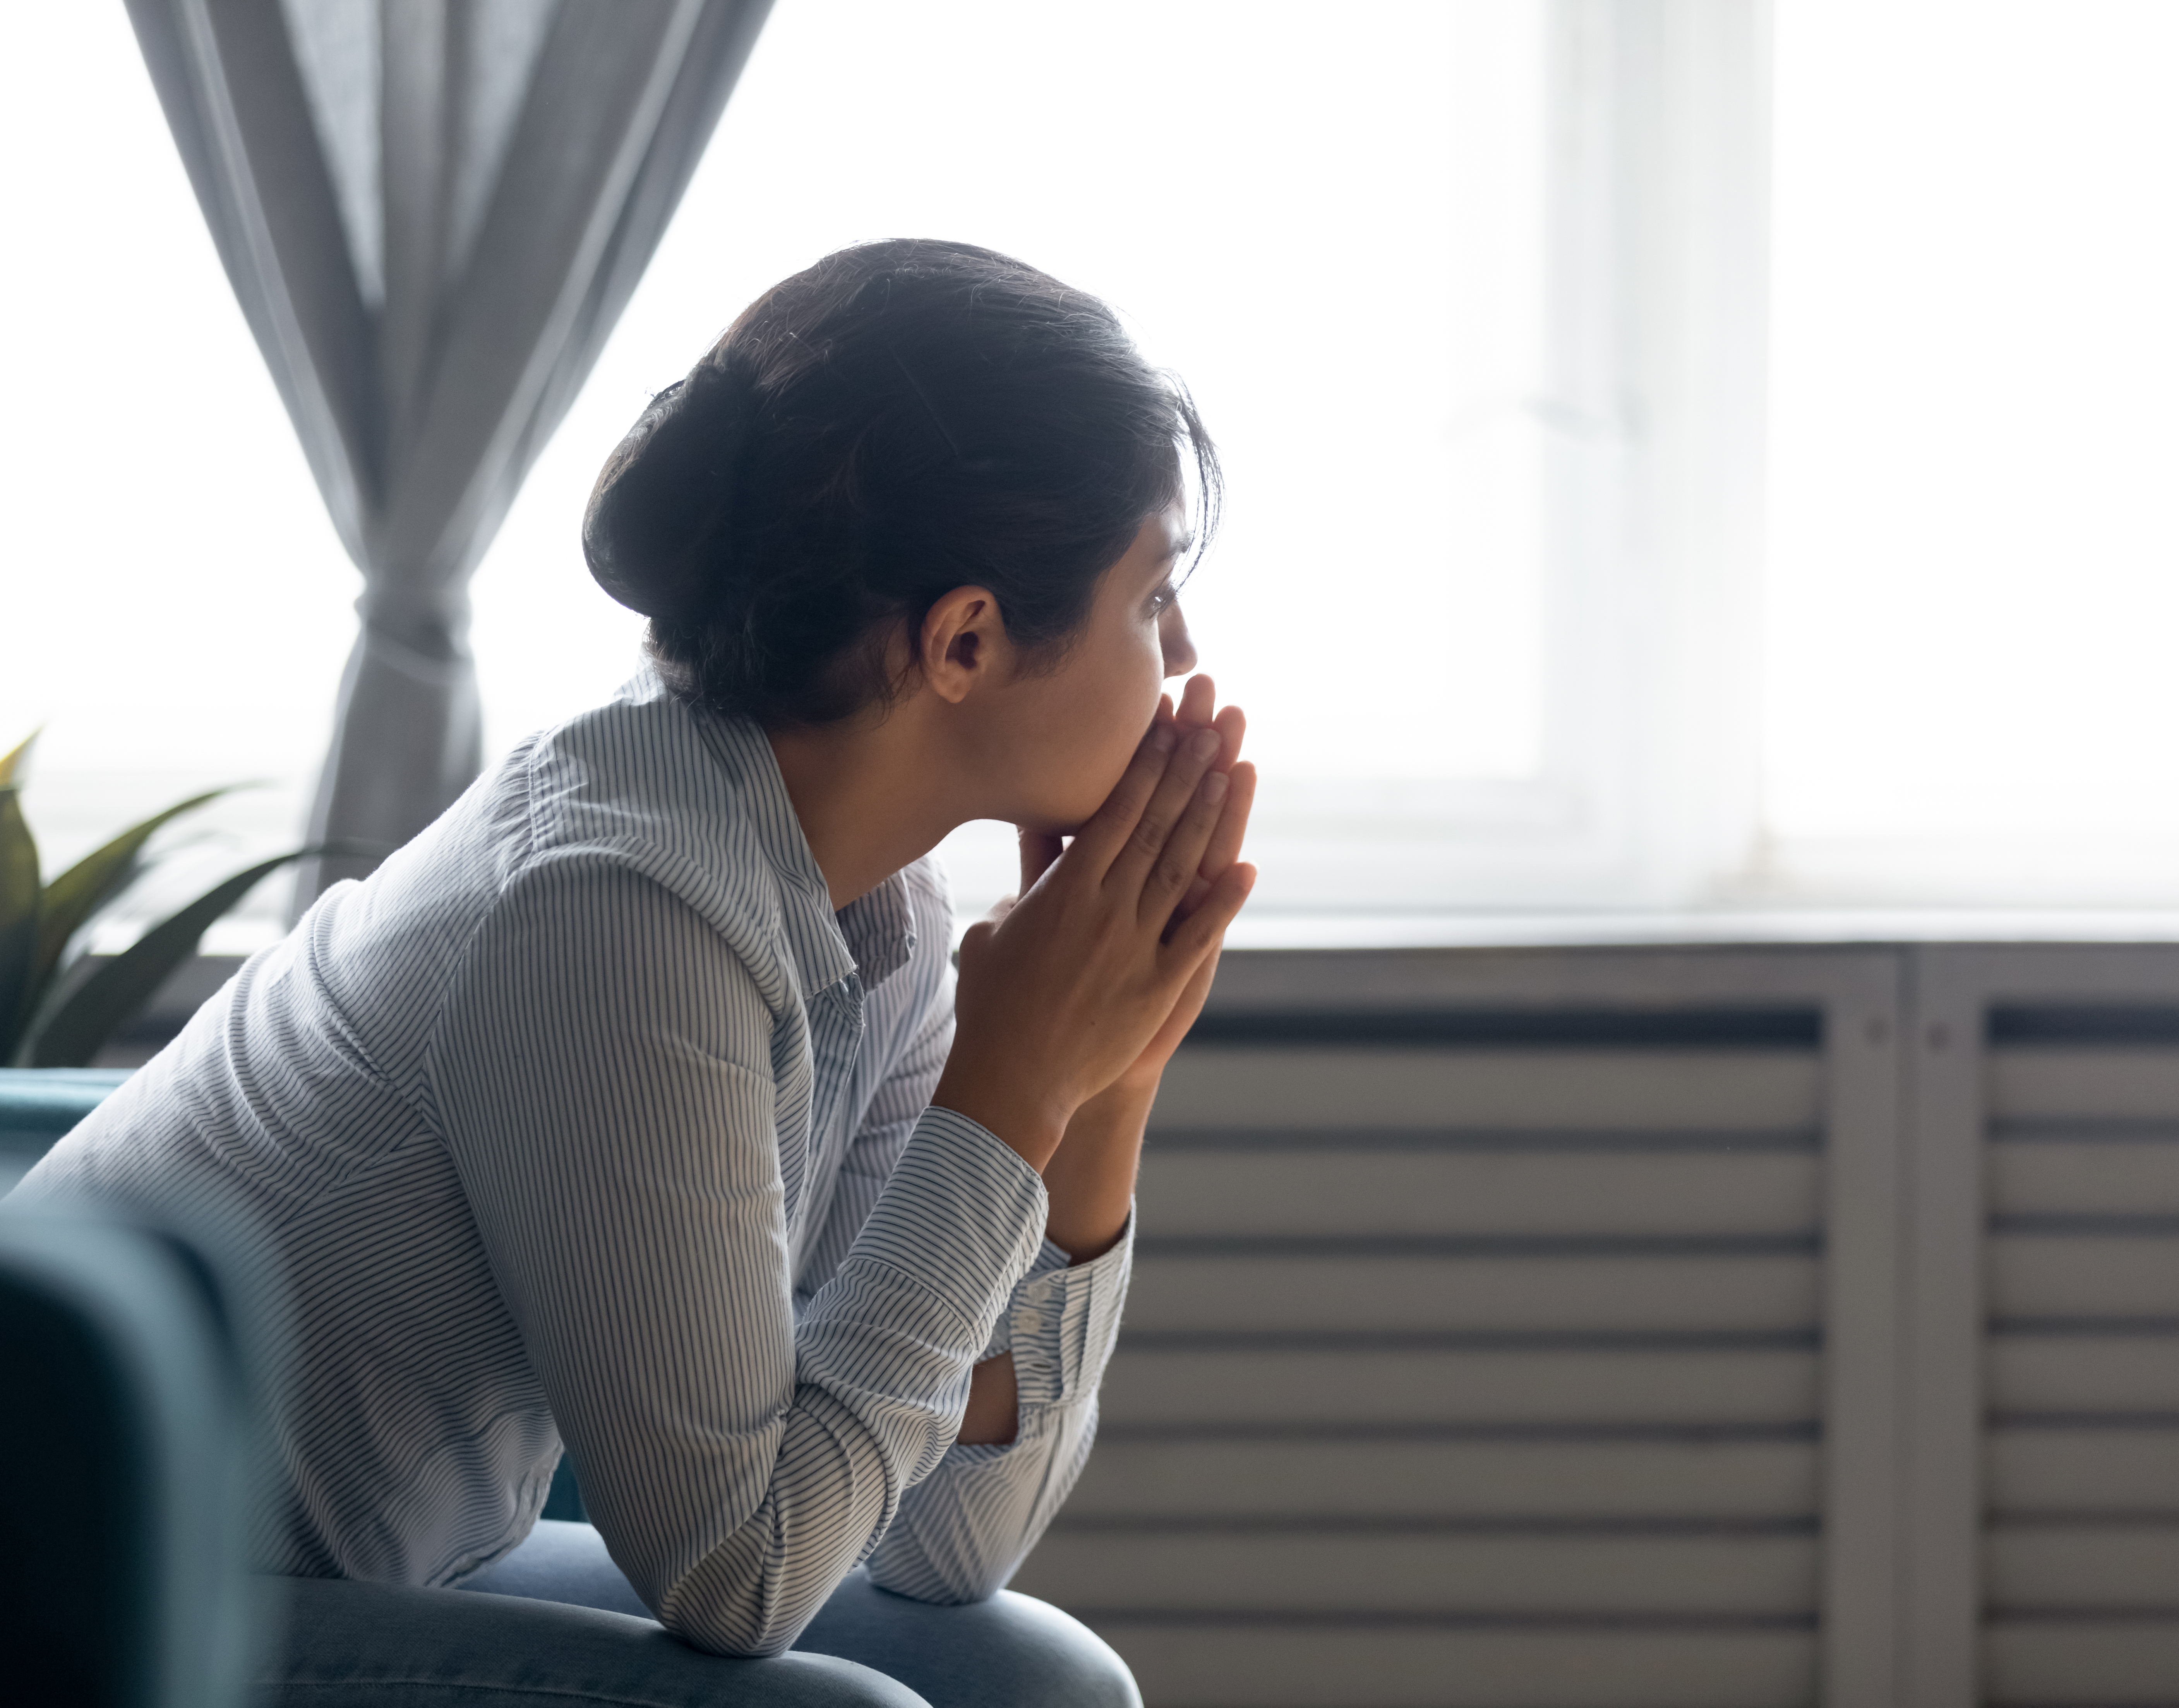 A person sitting and thinking by the window